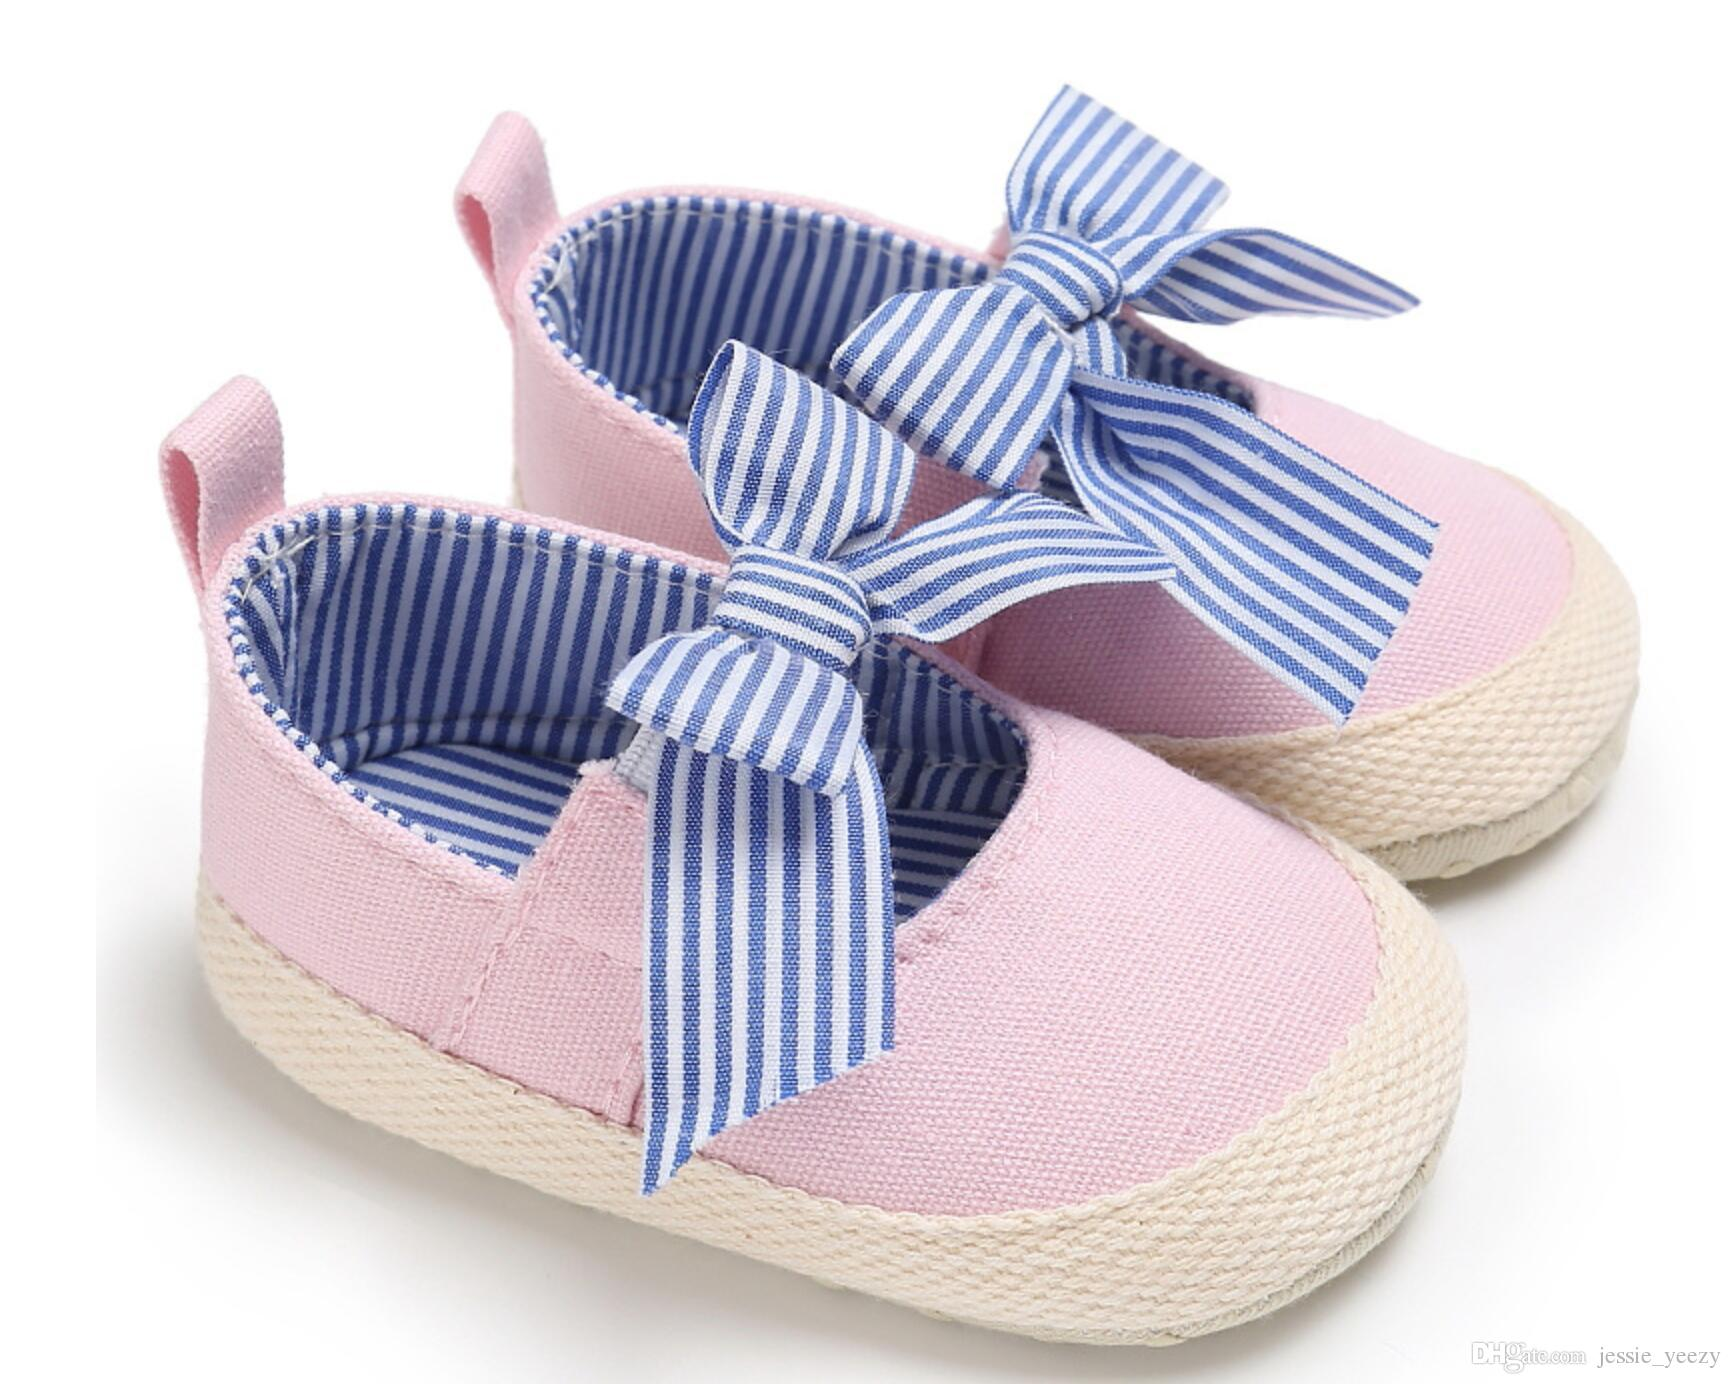 Jessie store Baby First walkers Blue Tint Semi Fromzen high version shoes